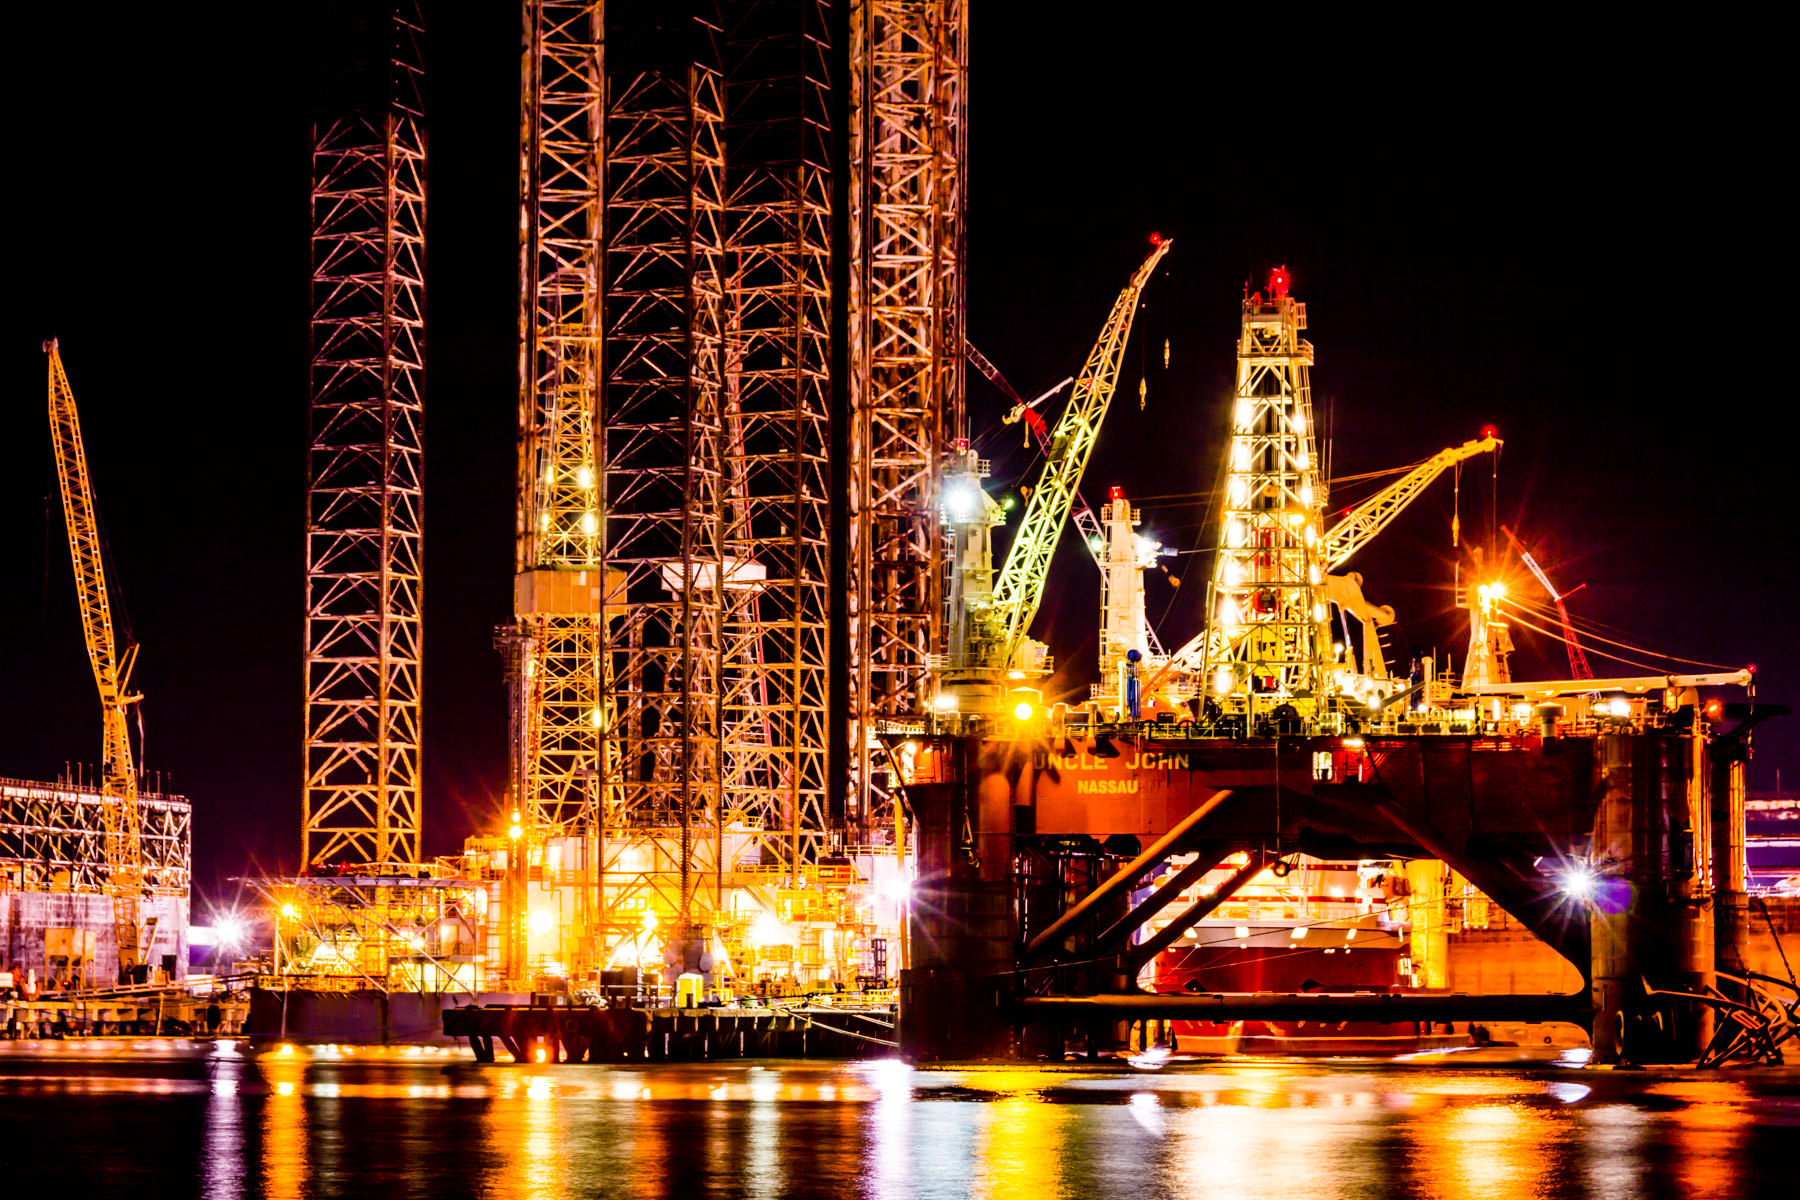 Offshore oil platforms in graving docks at Pelican Island, Galveston, Texas.